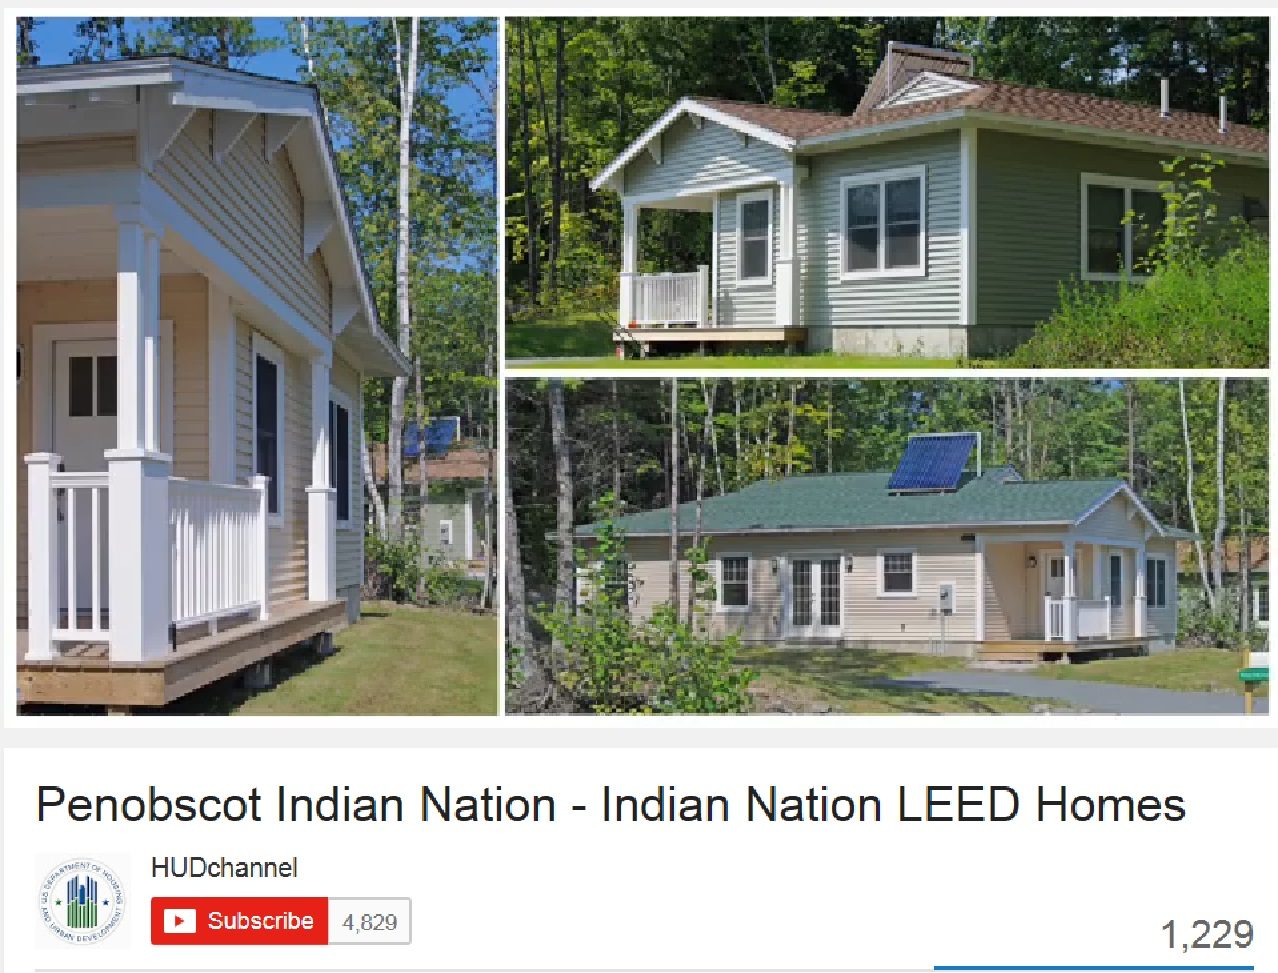 Penobscot LEED Homes